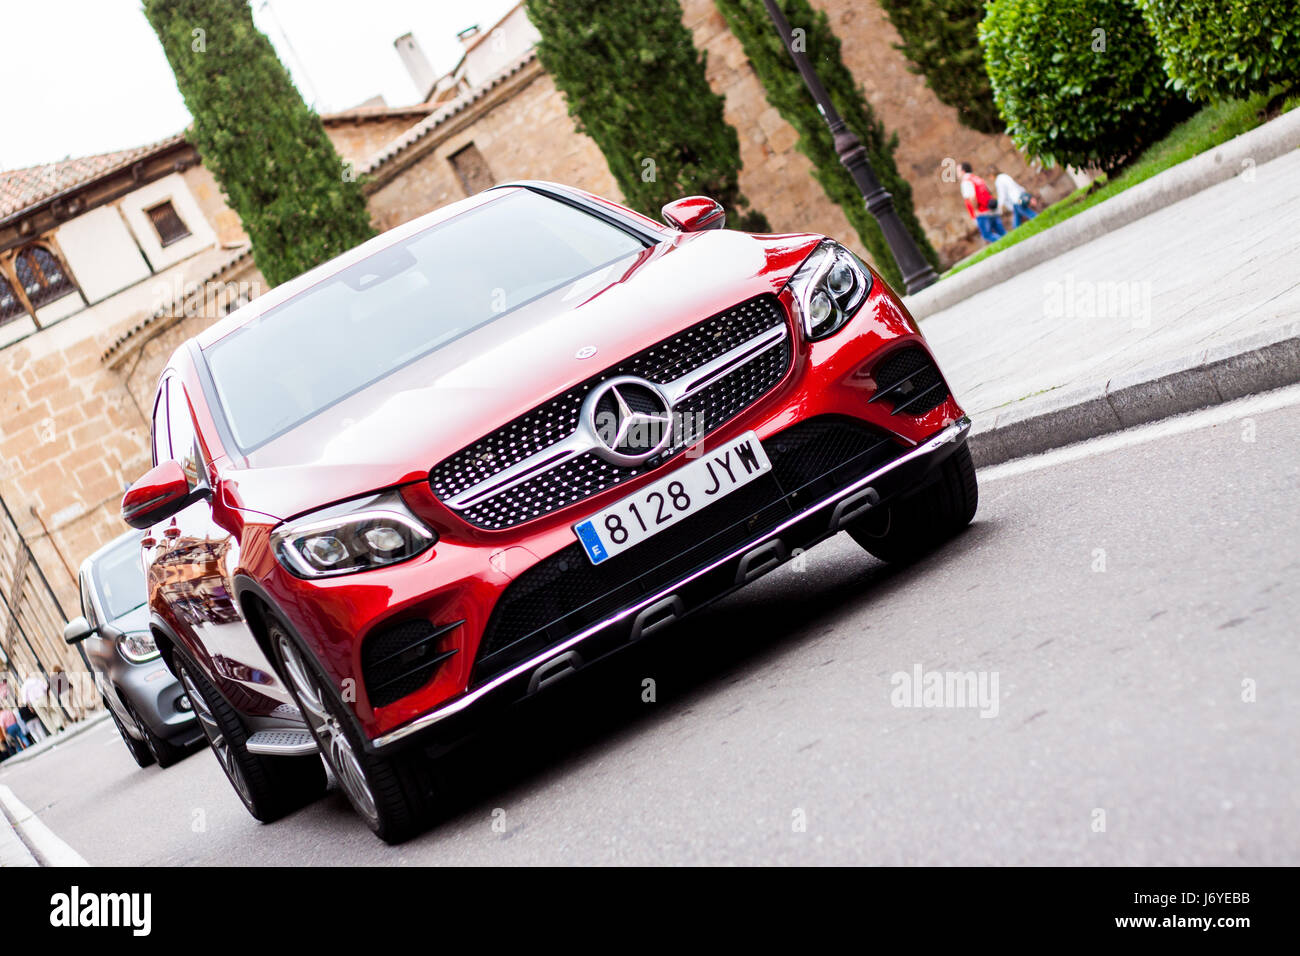 Mercedes Benz GLC 220 Coupe in the streets of Salamanca - Stock Image